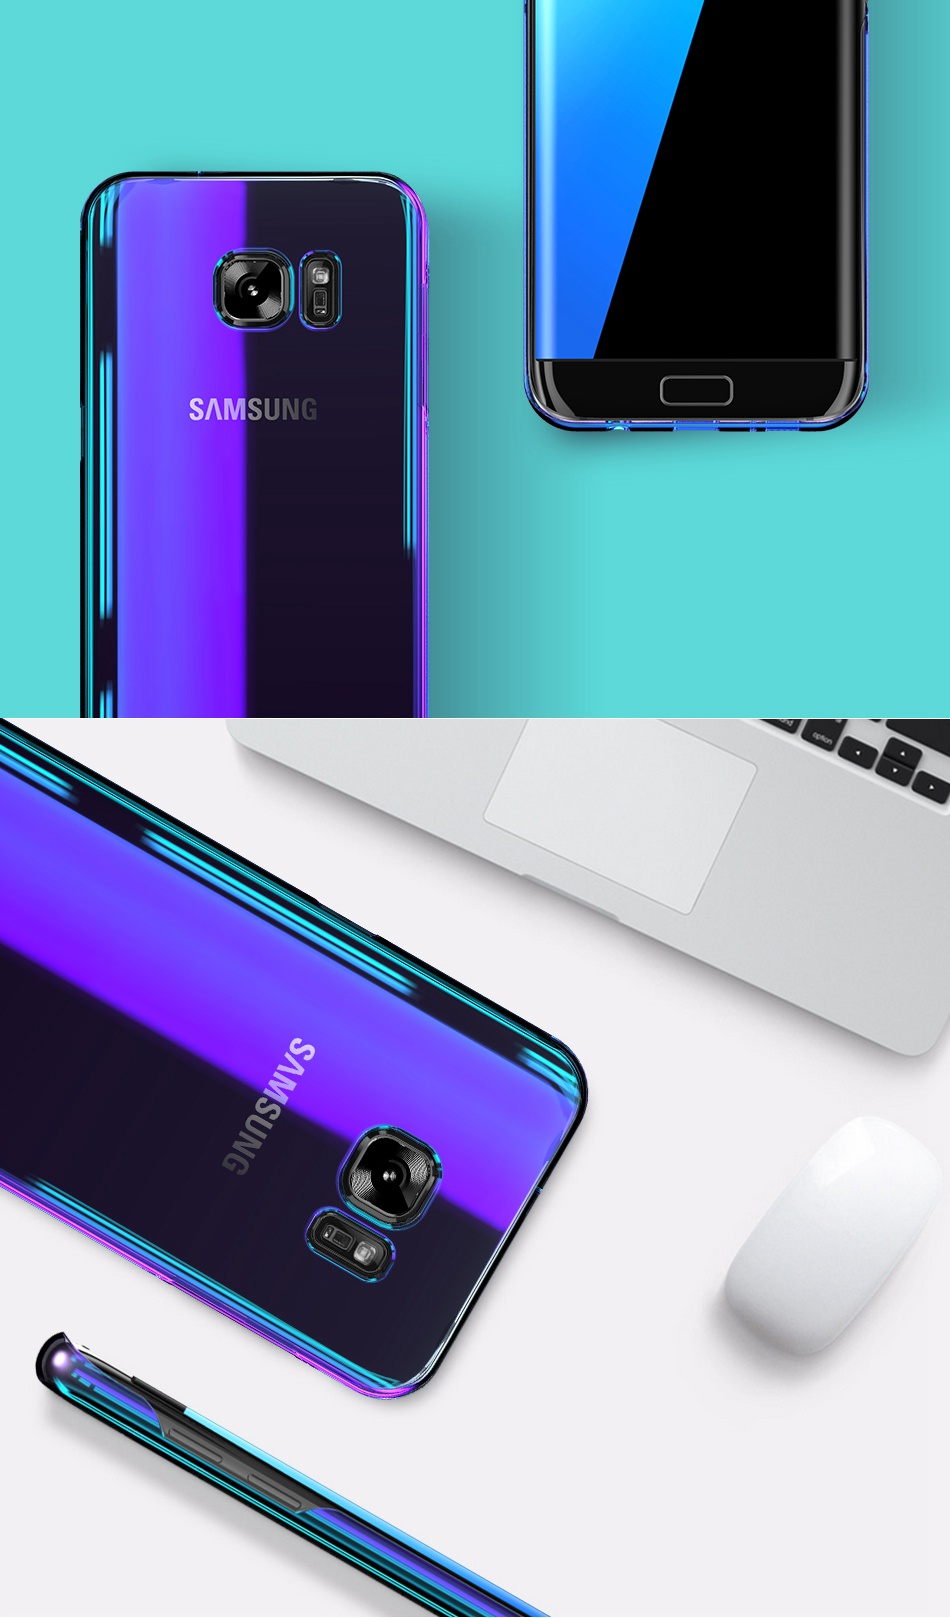 Blue Light Cover For Samsung S8 Case Galaxy S8 Plus Gradient Aurora Phone Cases For Samsung S8 S7 S6 Edge (7)